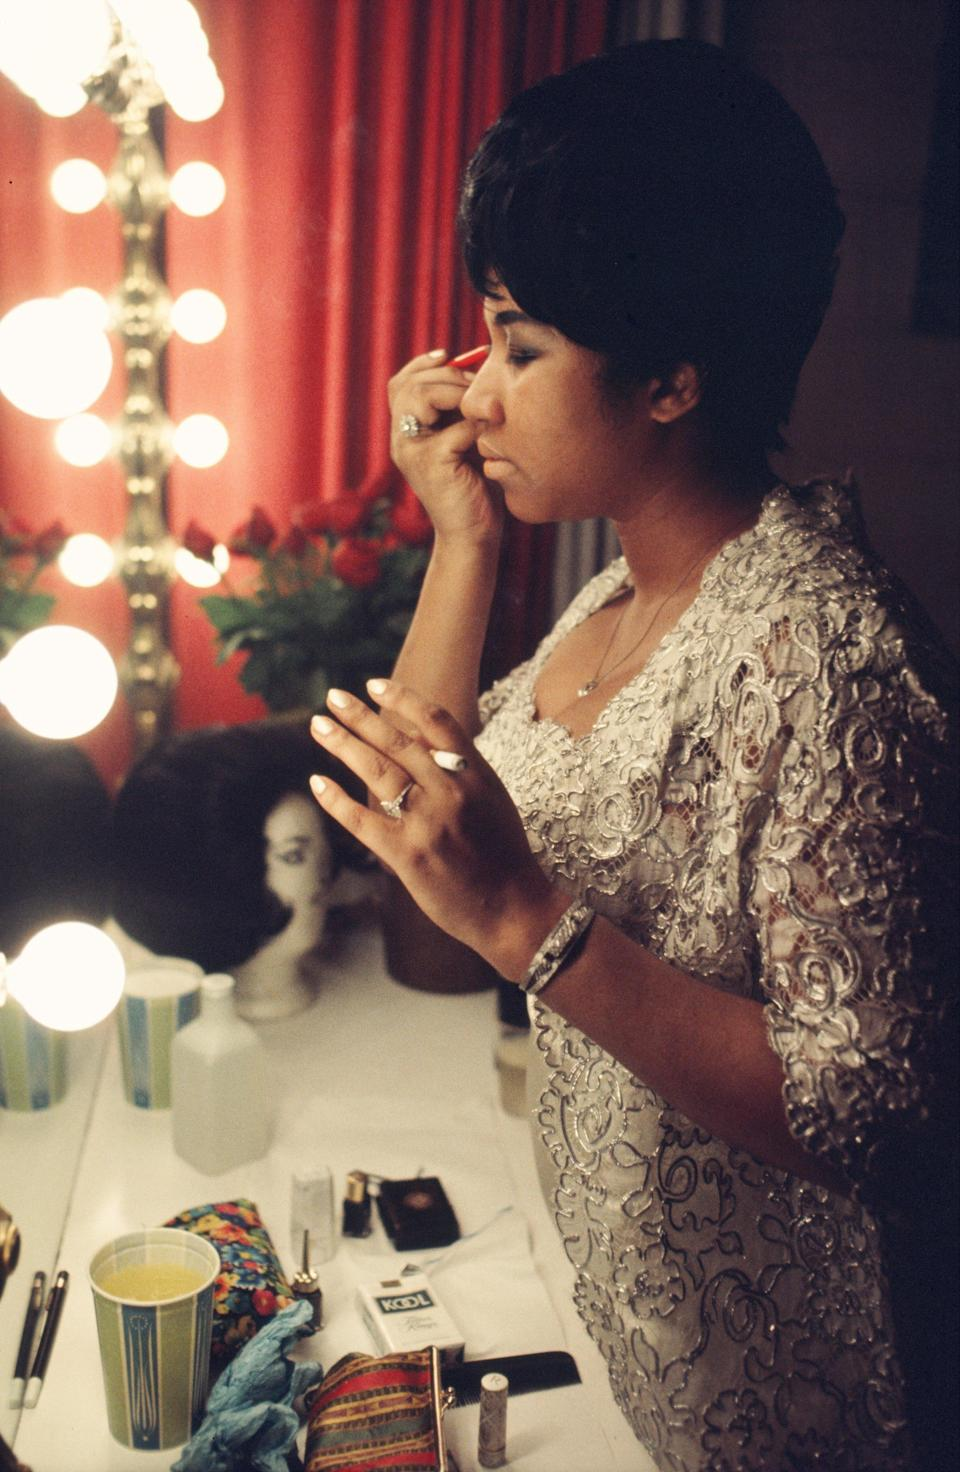 <p>Aretha Franklin fixes her makeup backstage, wearing a gold lace gown and delicate jewels, before a performance at Symphony Hall in Newark, N.J. (Photo by:Walter Iooss/Getty Images) </p>